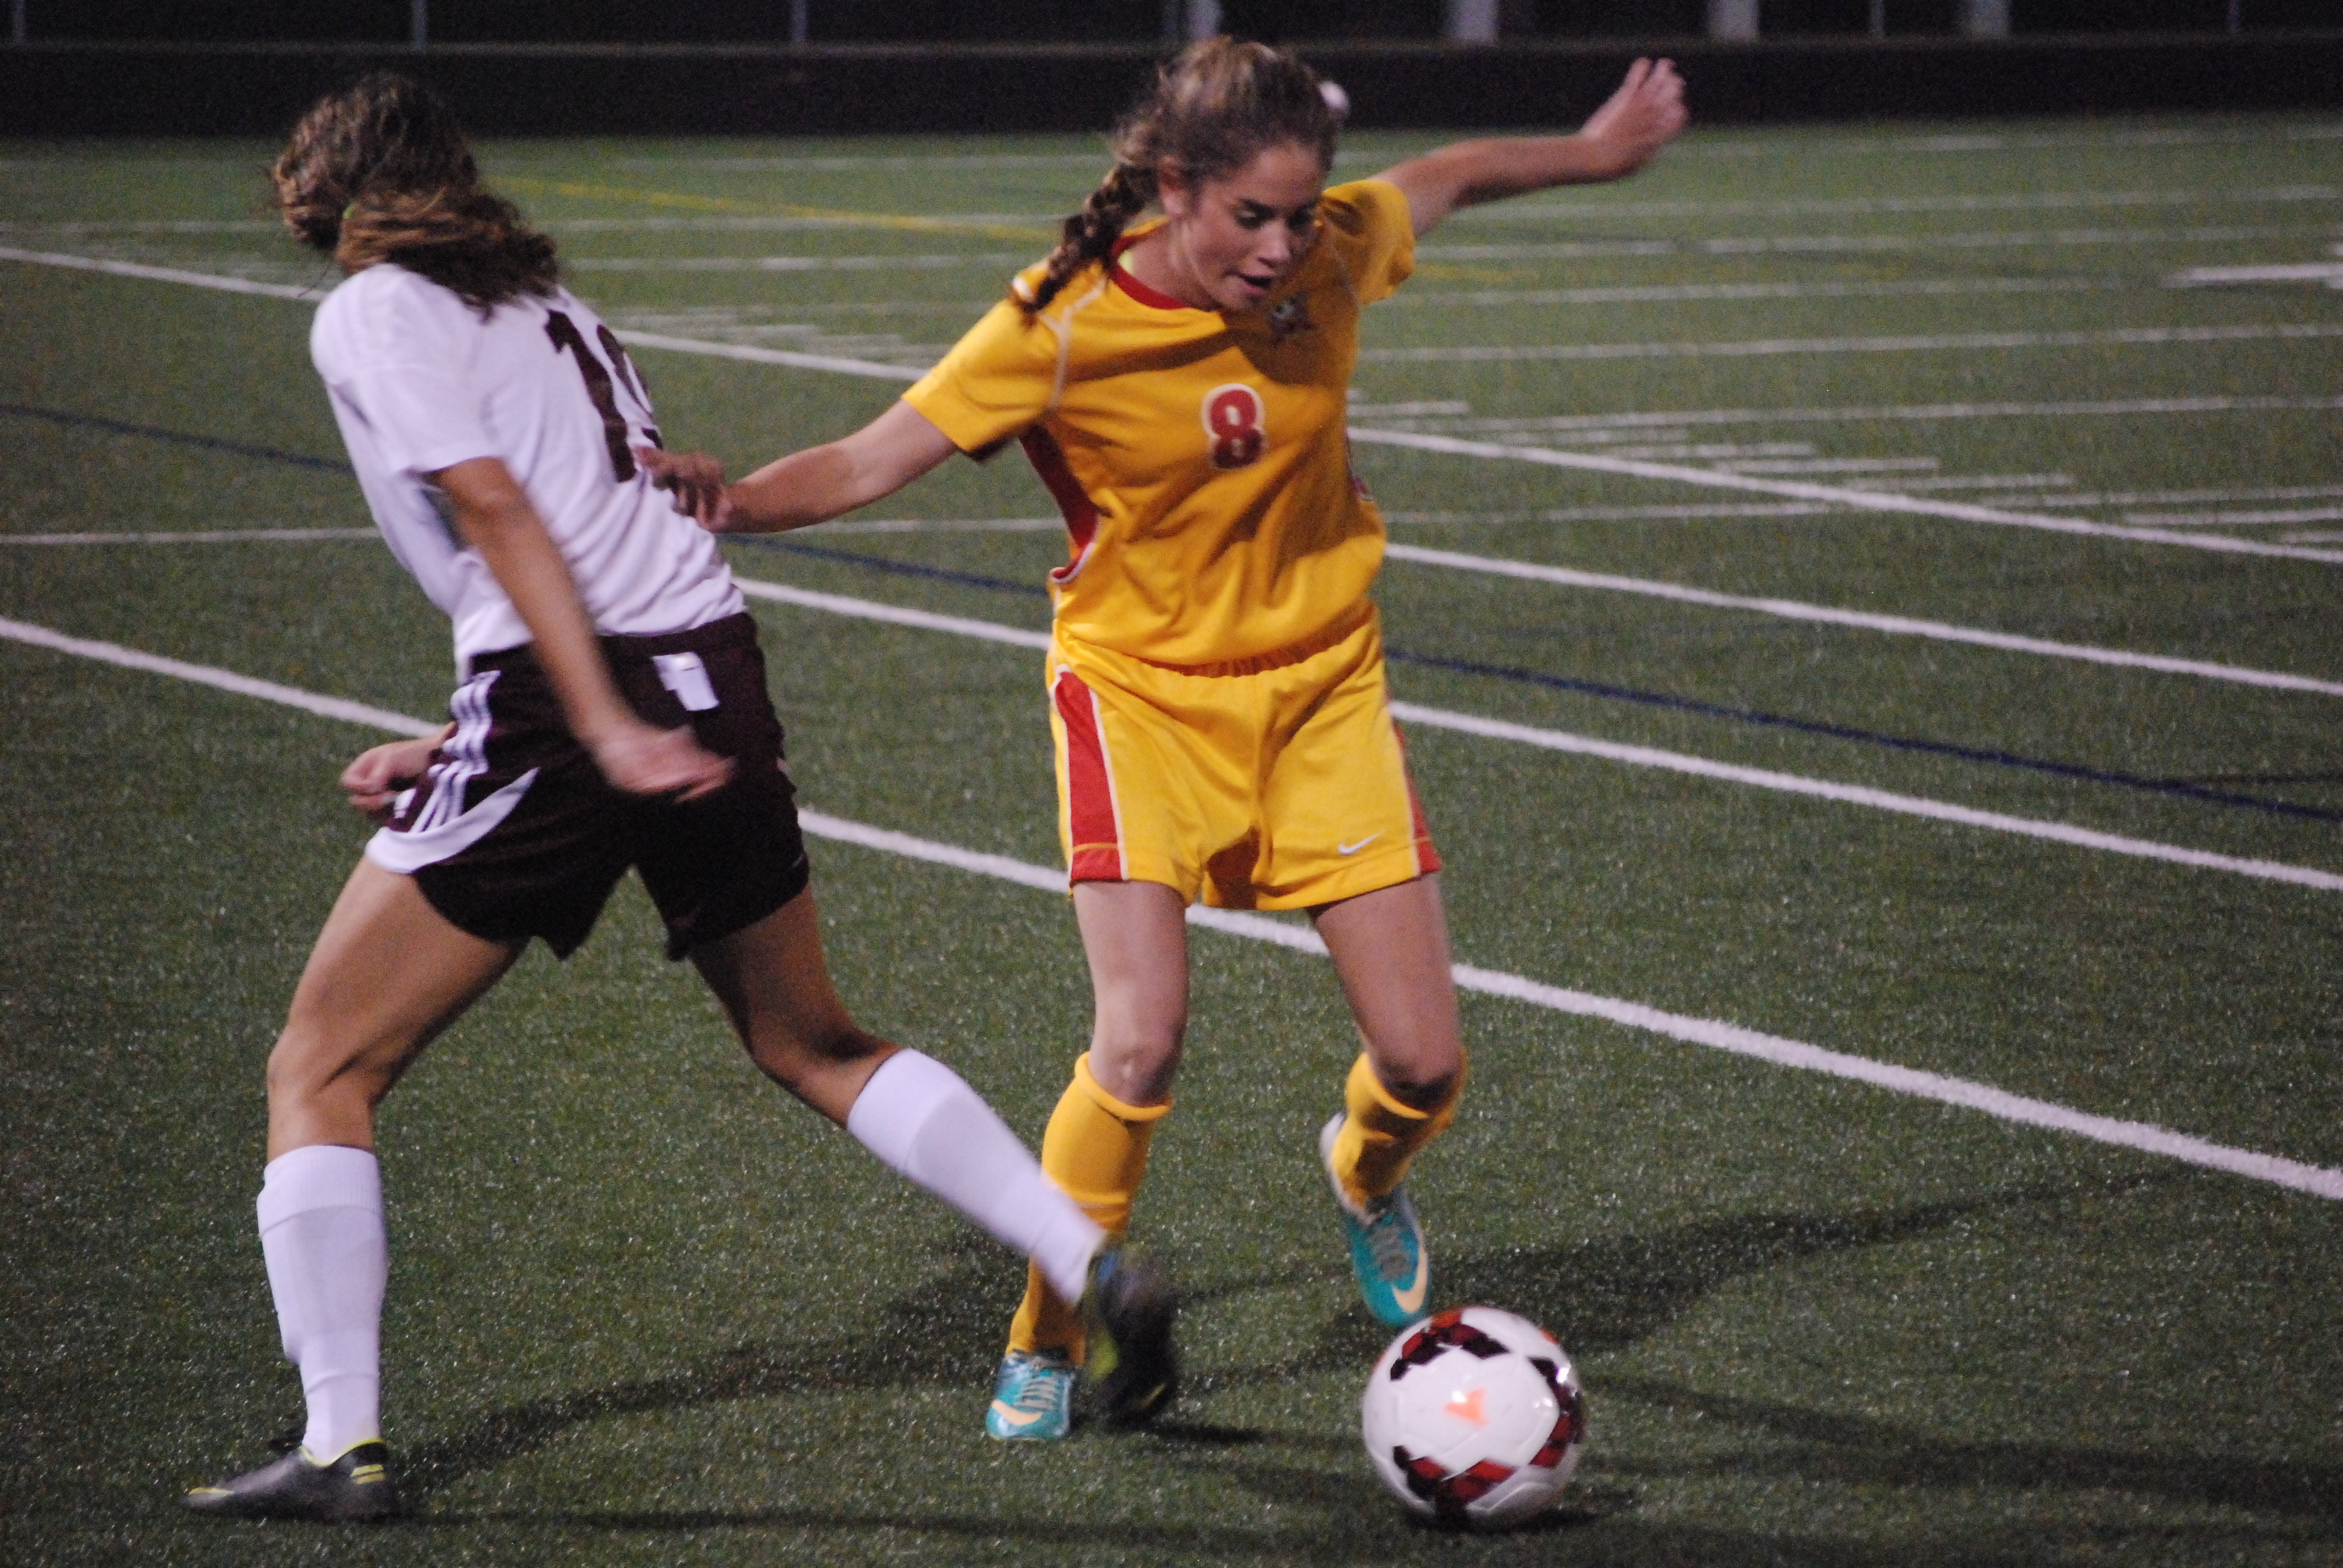 Fenwick sophomore Taylor Engle wins a ball against Columbus Academy sophomore Lily Rizk during first-half action the Division III regional semifinal match Tuesday night at Hilliard Bradley High School. Fenwick won the game 2-0 to advance to Saturday's regional final.